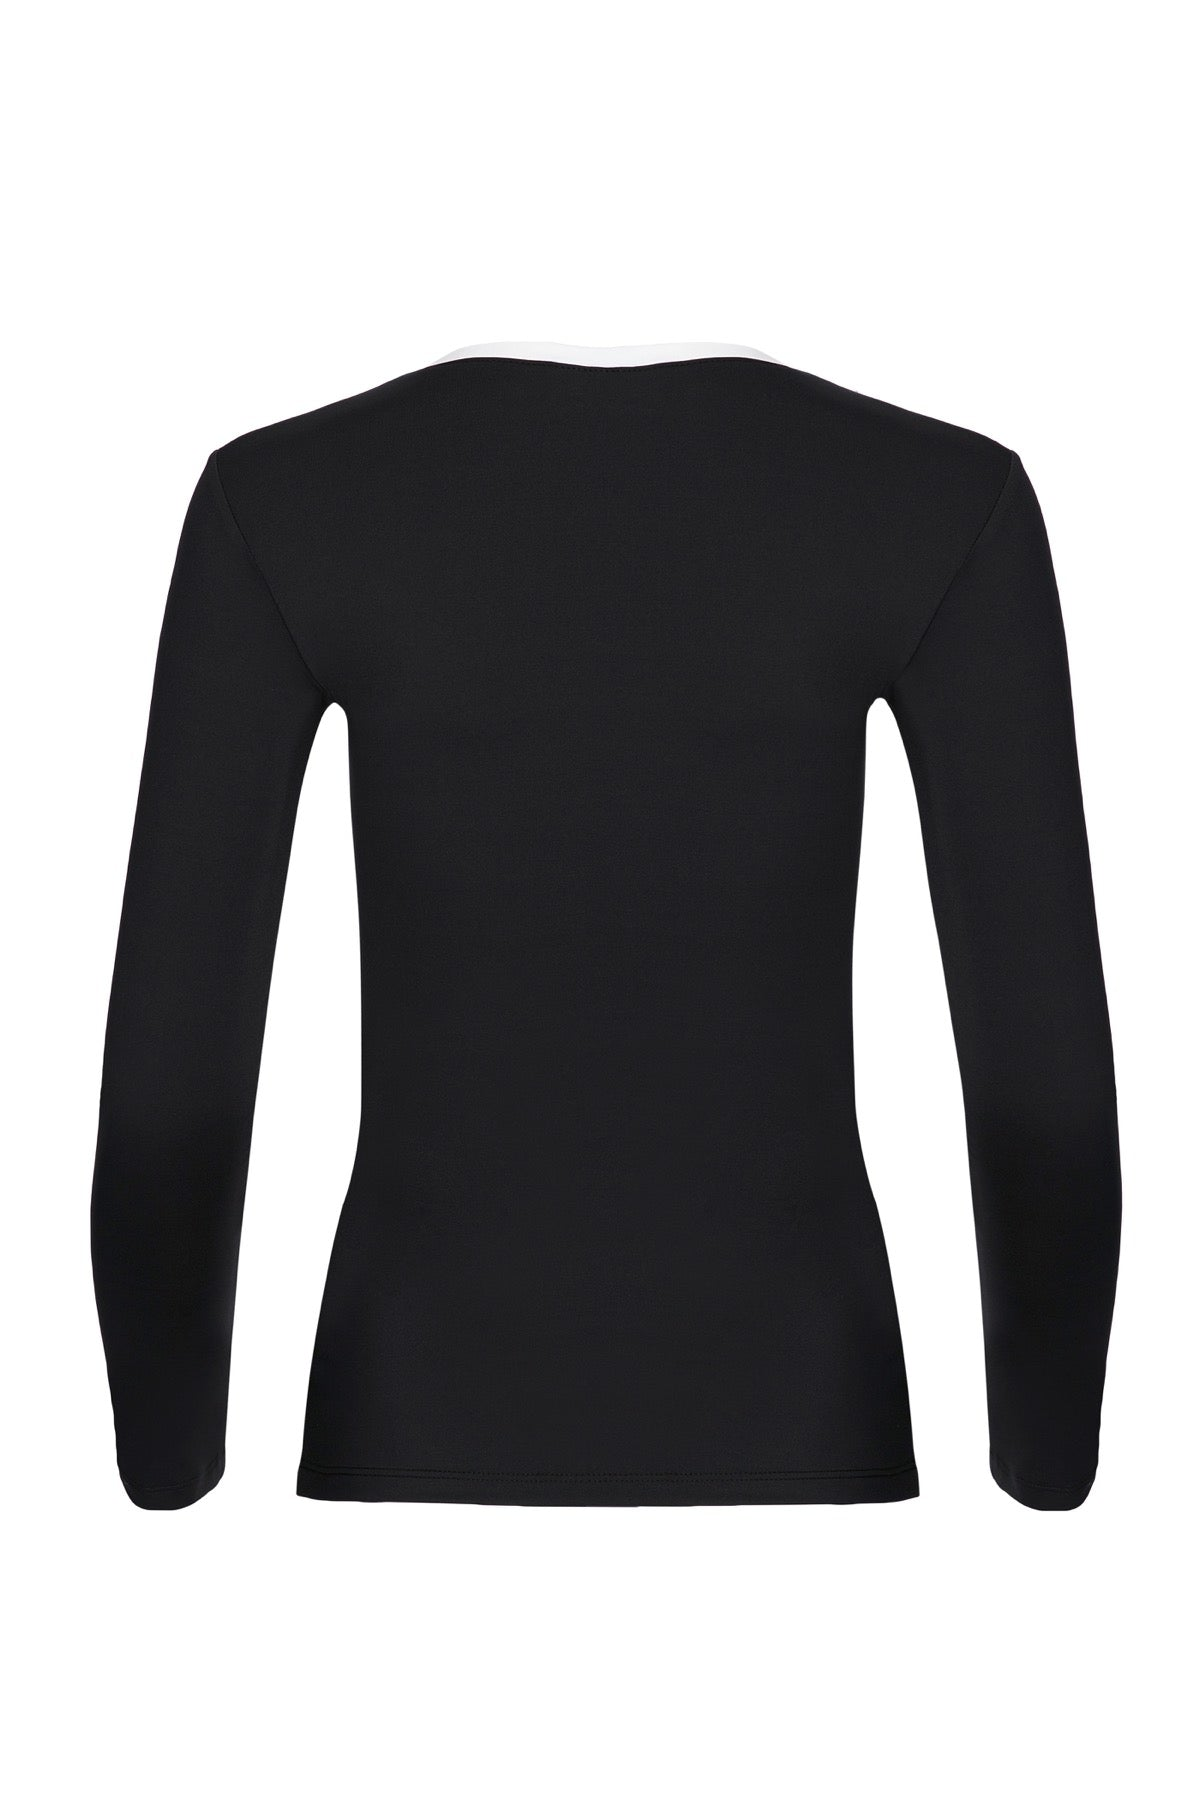 The Perfect T - Long Sleeve | UV Protective - Luminora